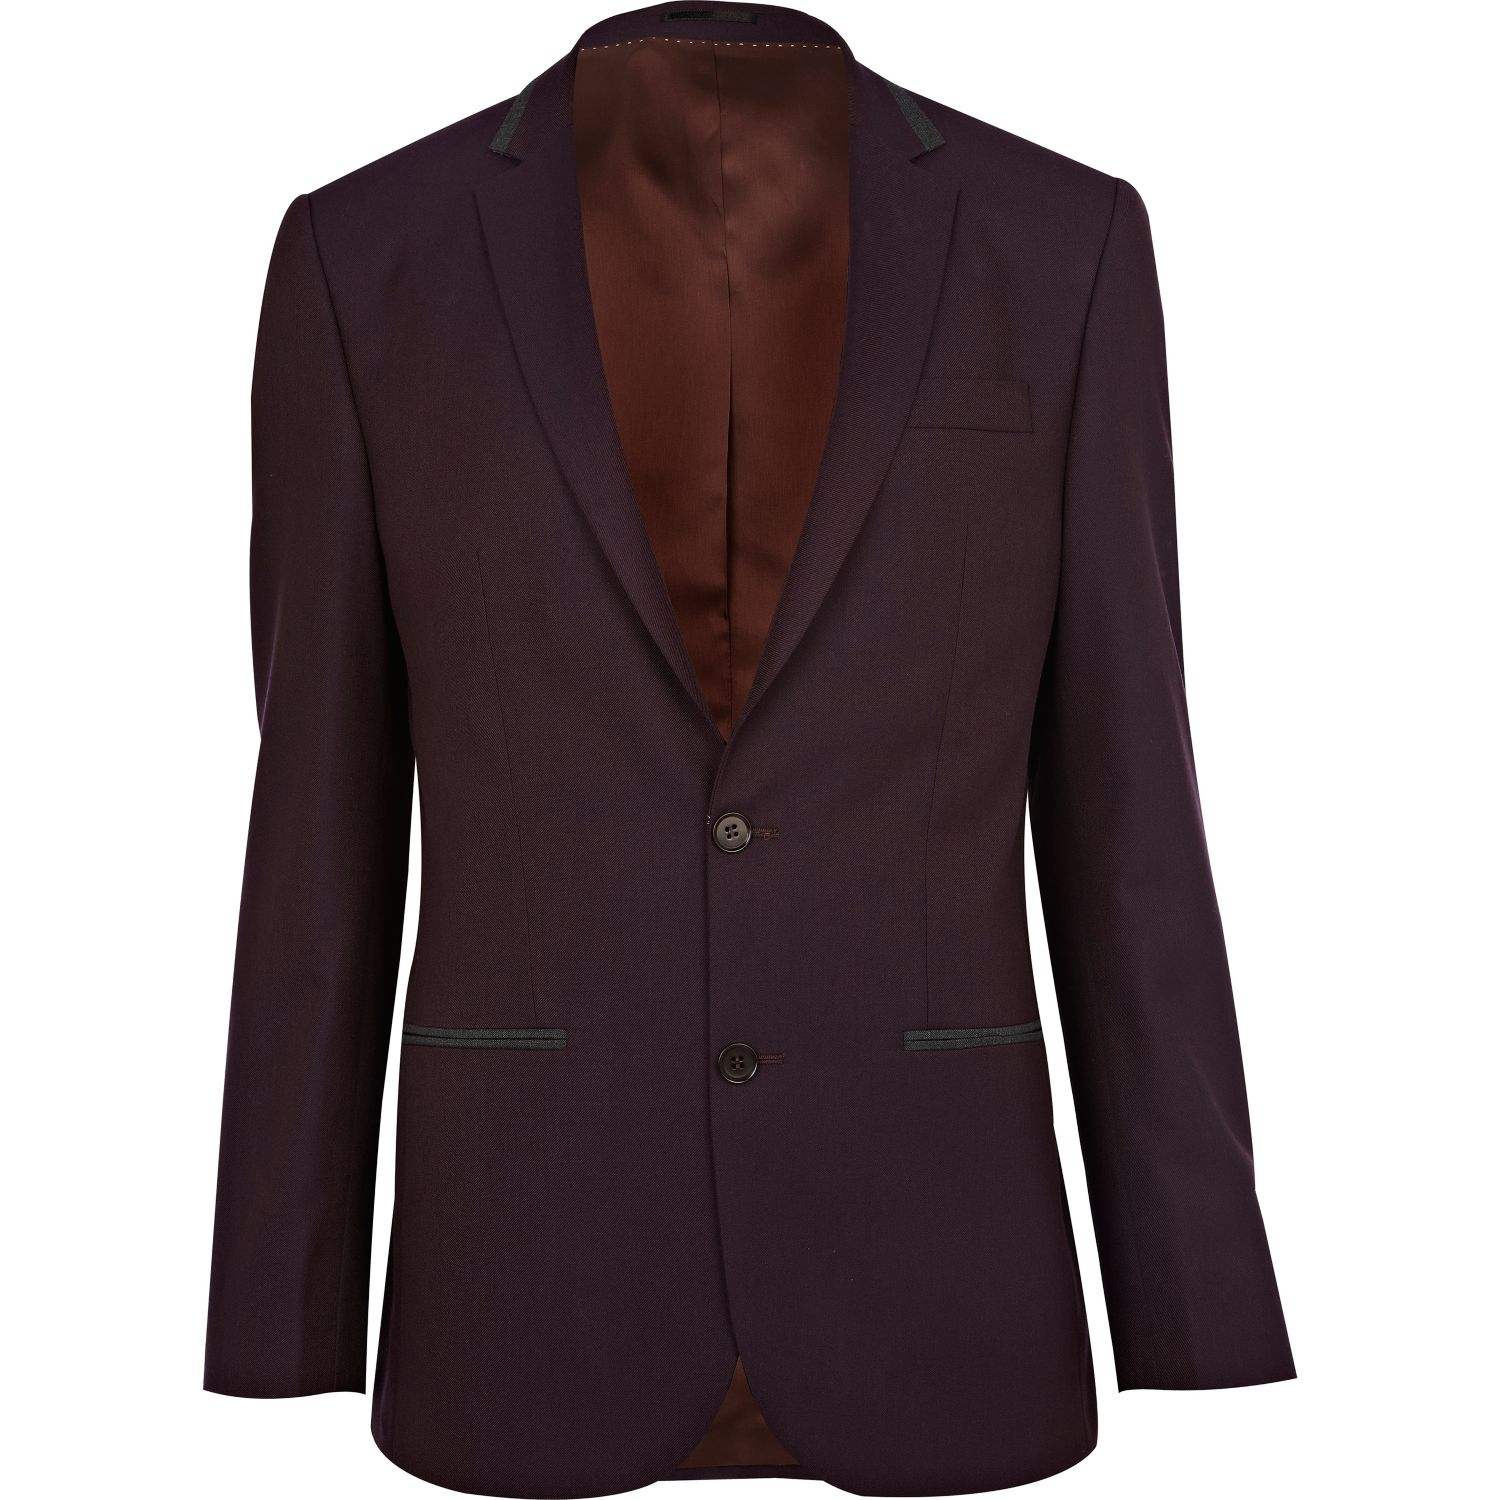 Free shipping and returns on Men's Purple Blazers & Sport Coats at qrqceh.tk